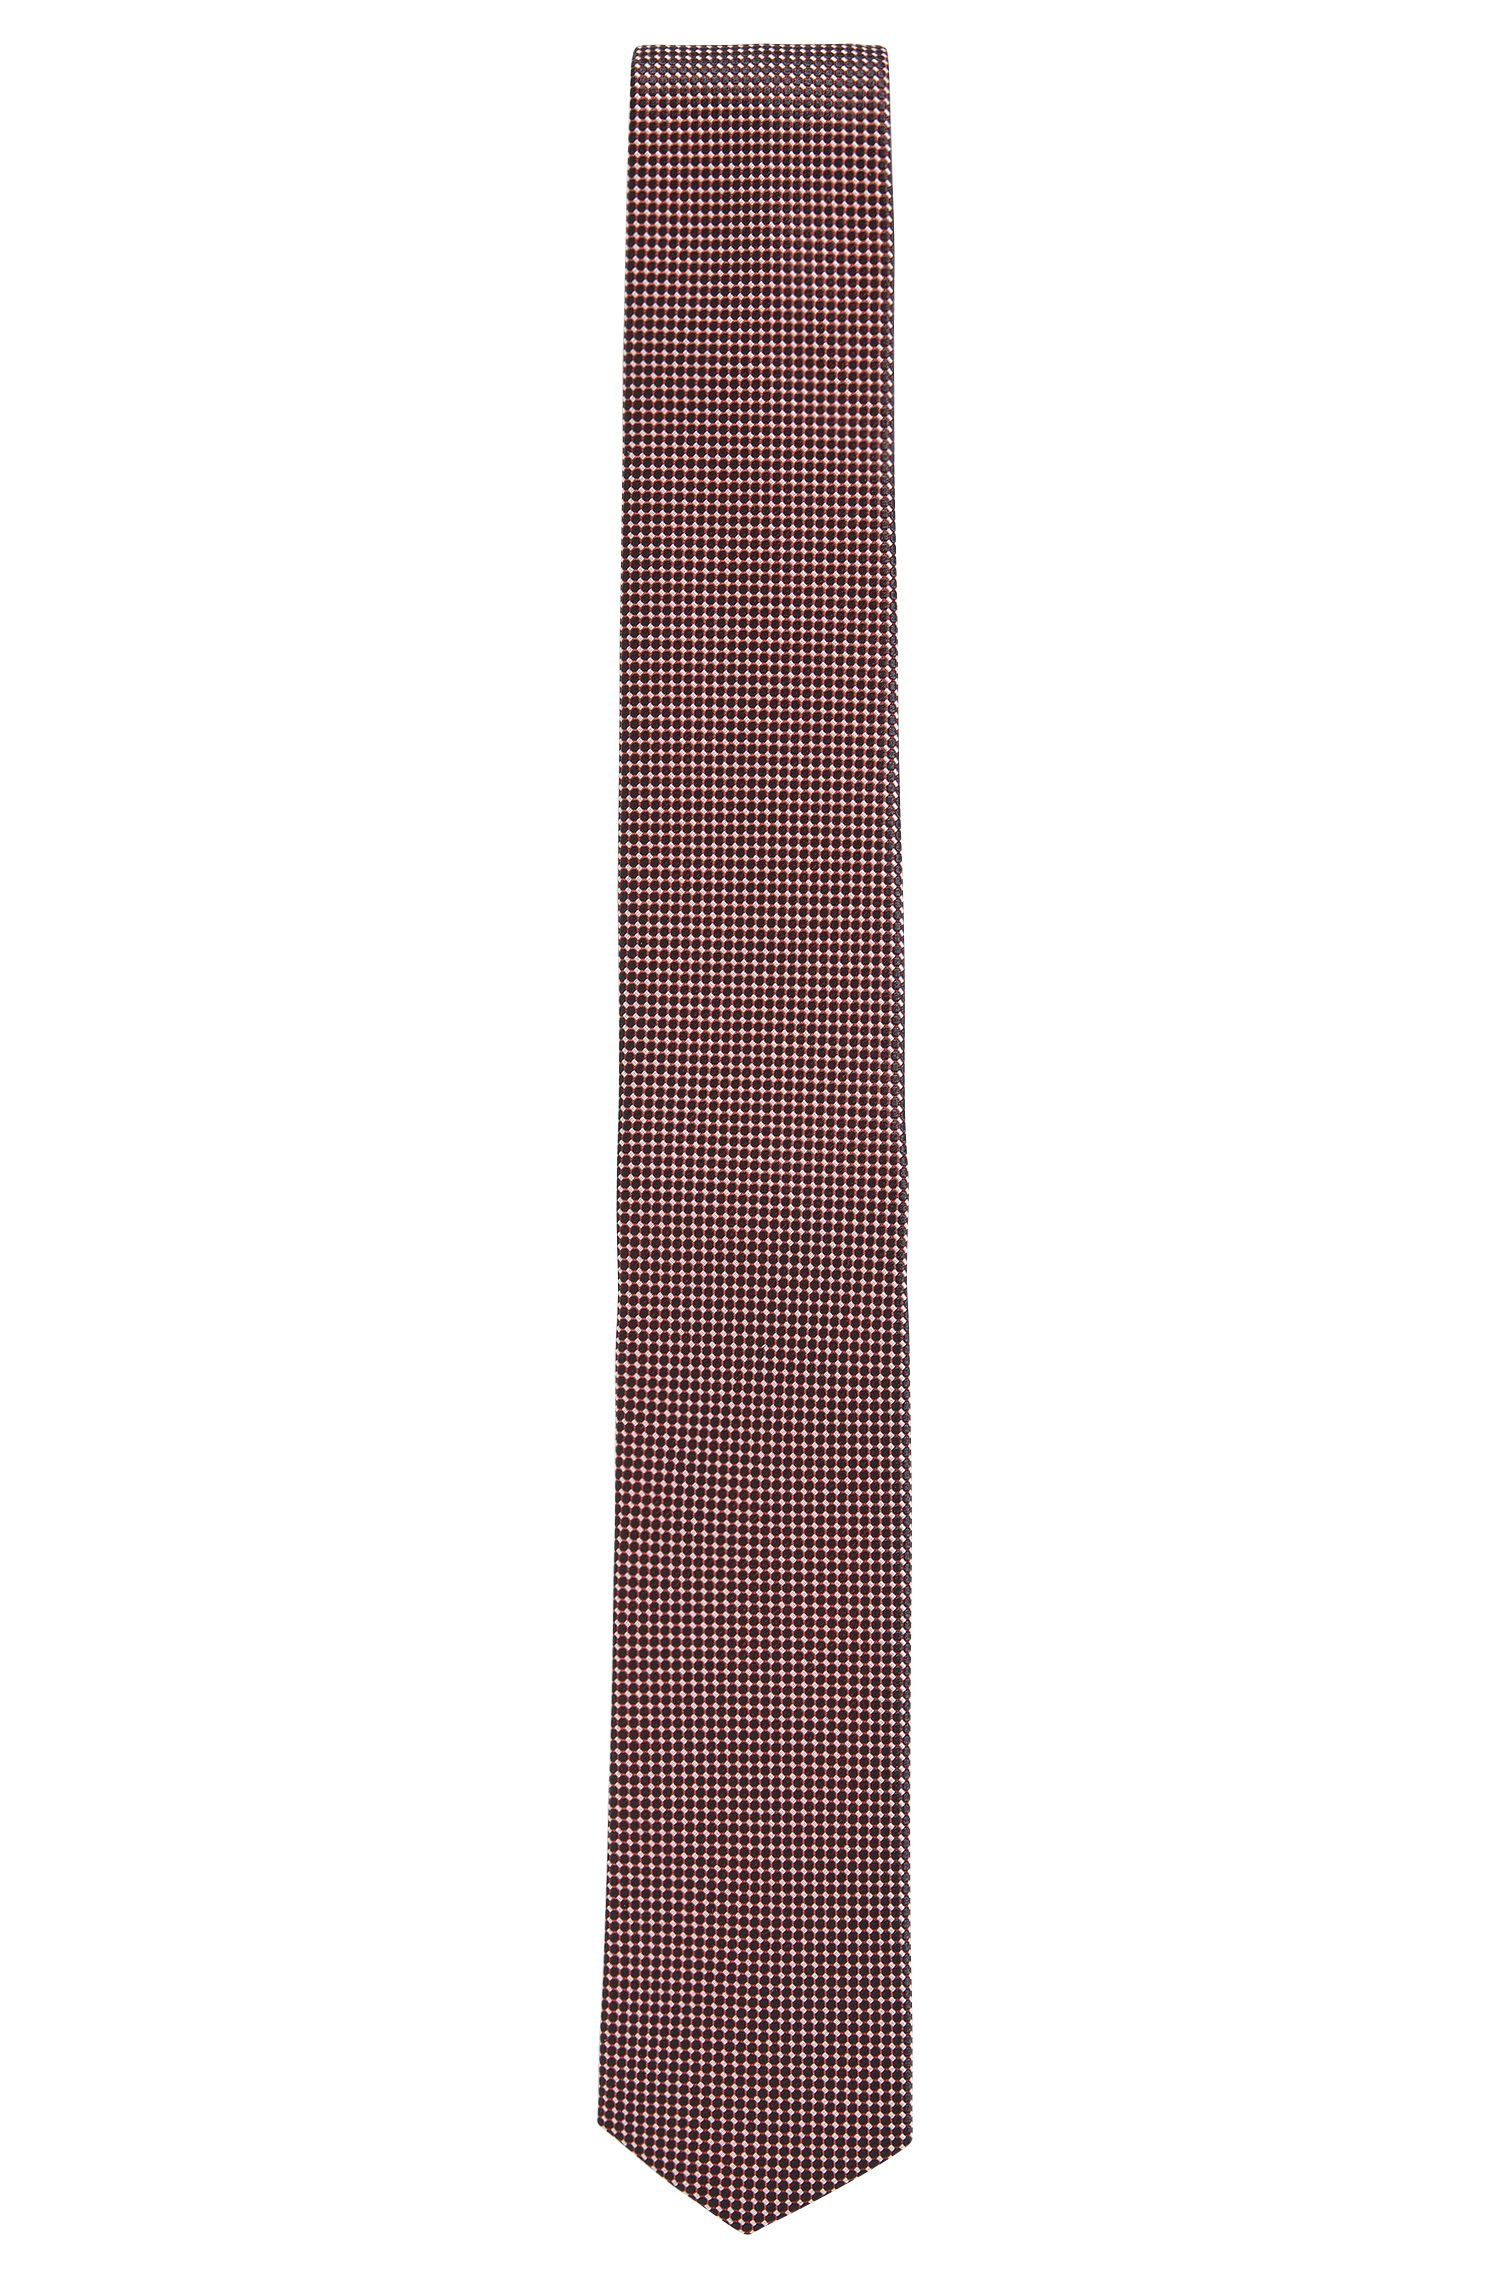 Waterproof tie in patterned silk jacquard